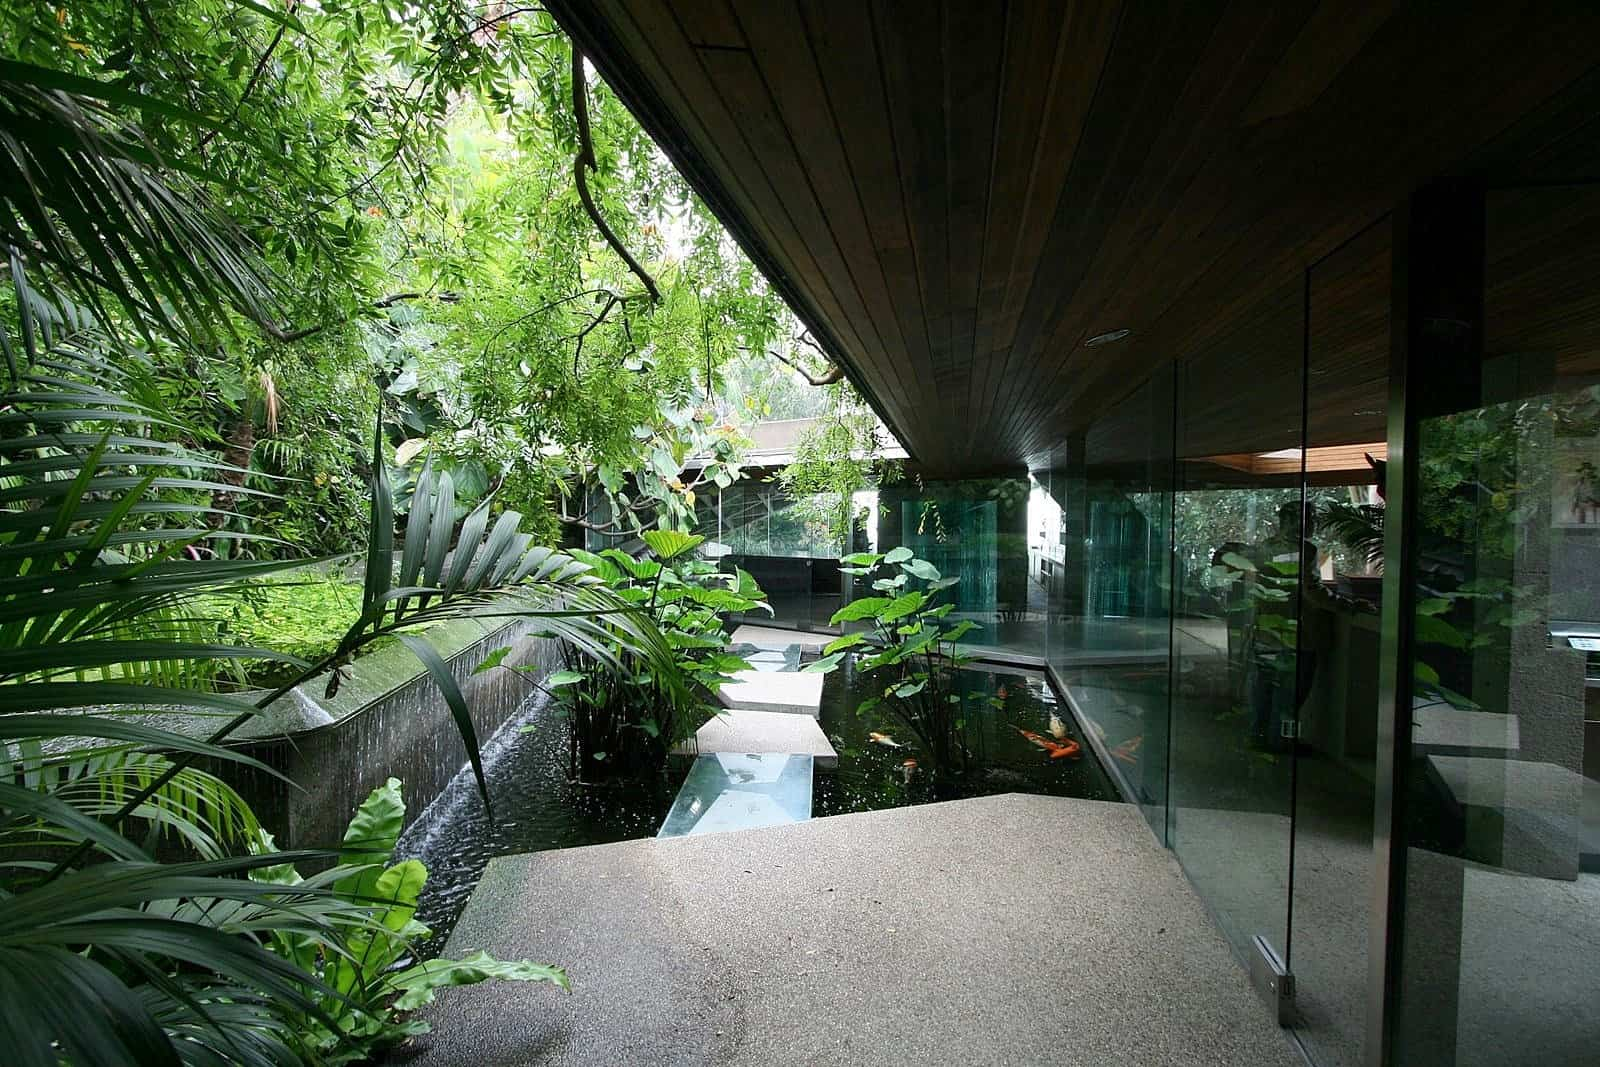 35 Sublime Koi Pond Designs and Water Garden Ideas for ... on Koi Ponds Ideas  id=16953